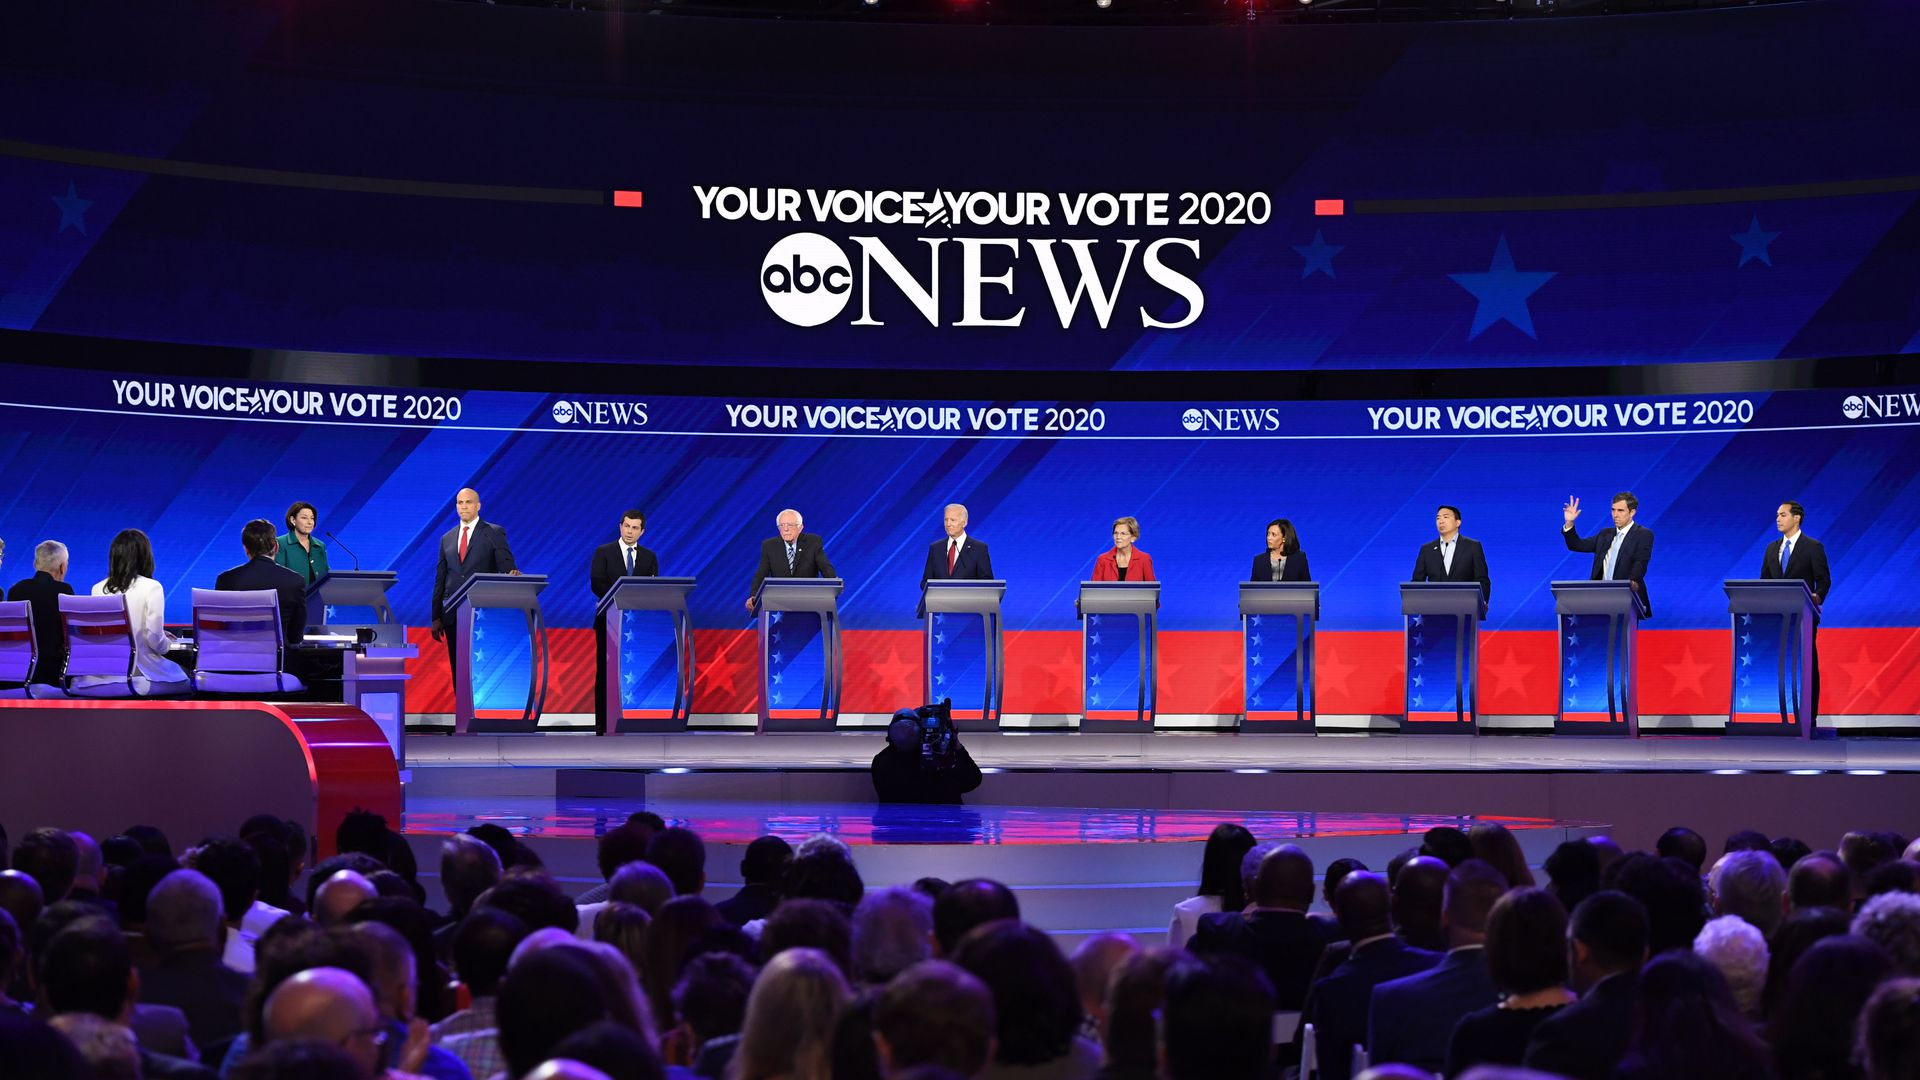 Early debate ratings show high interest in the Democratic primaries